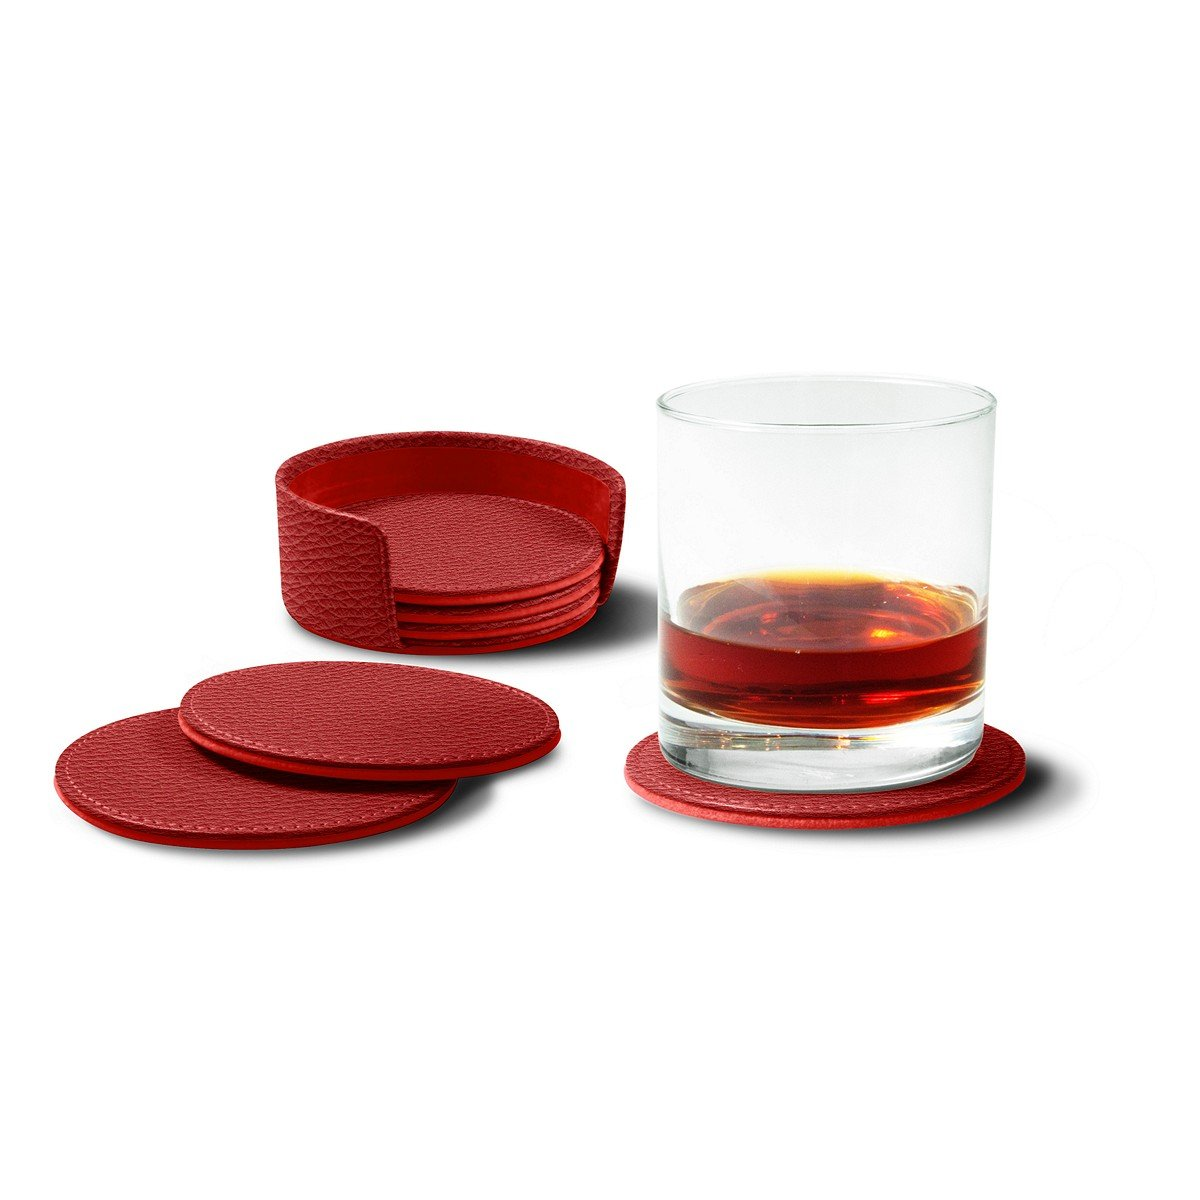 Lucrin - Set of 6 Round Real Leather Coasters with Coaster Holder - Red - Granulated Leather